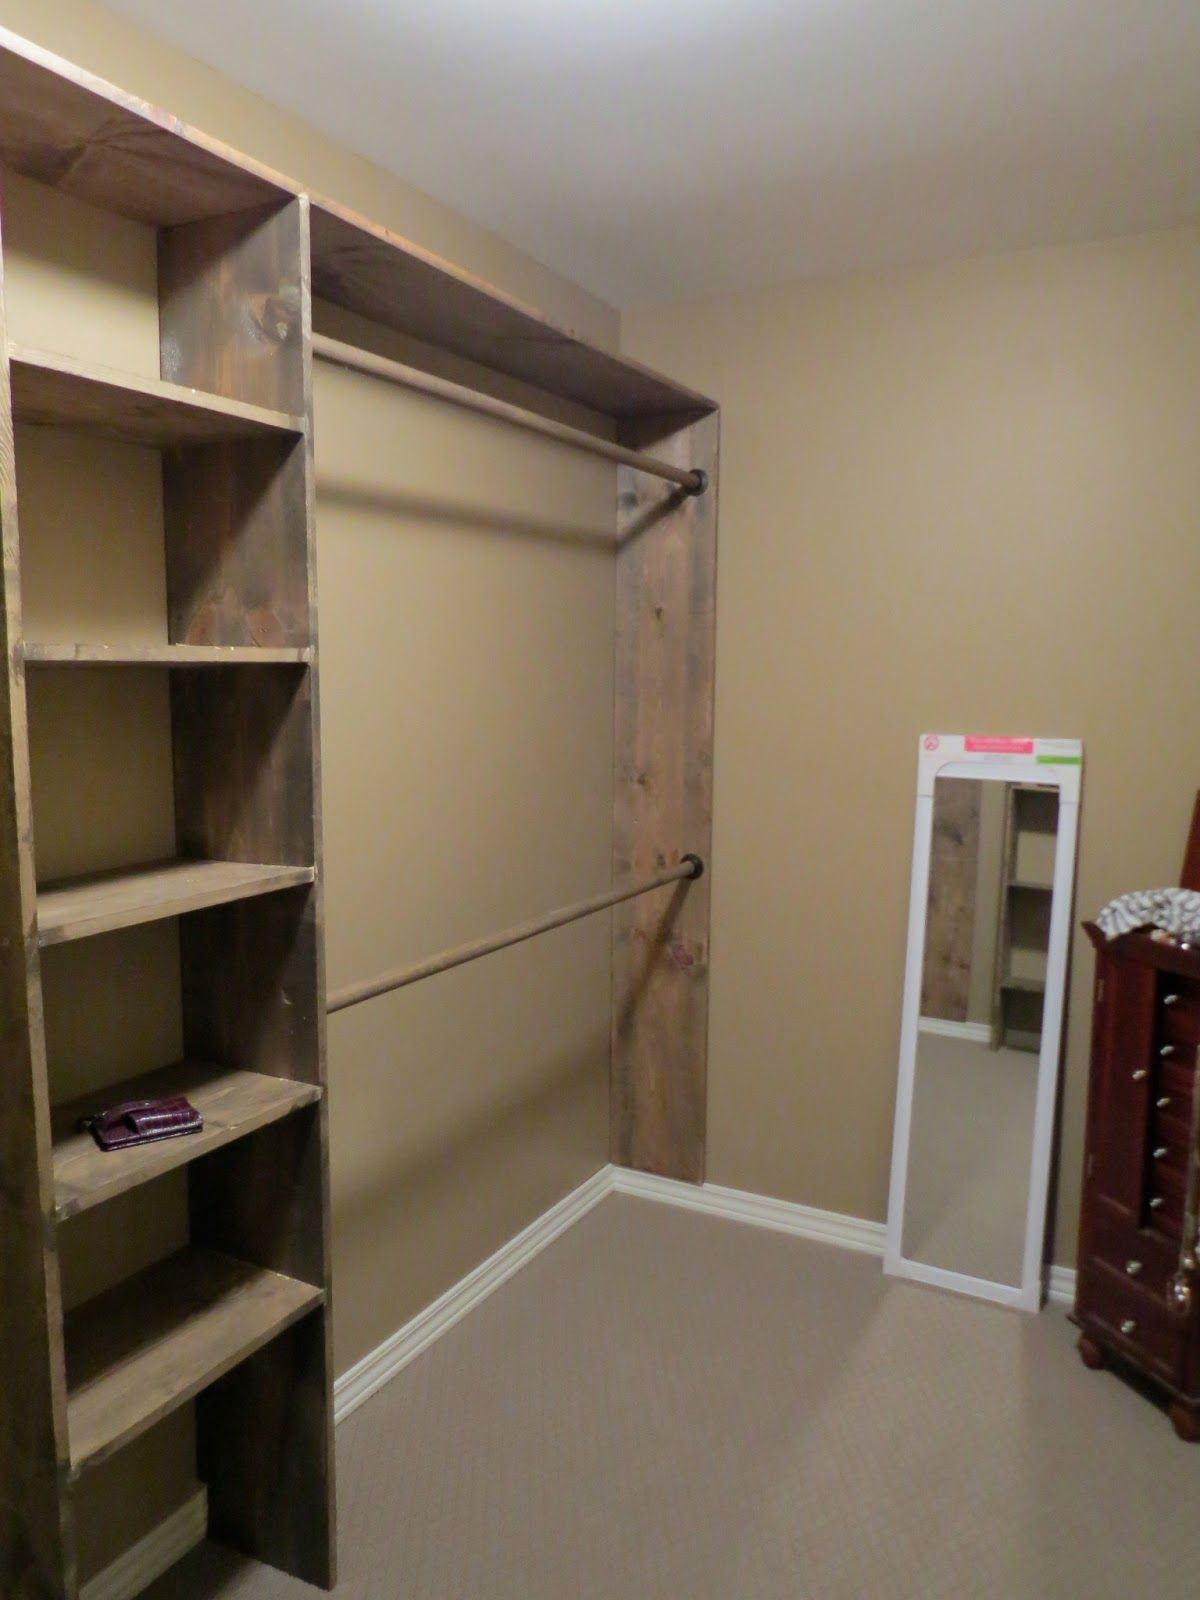 Let 39 s just build a house walk in closets no more living Master bedroom closet designs